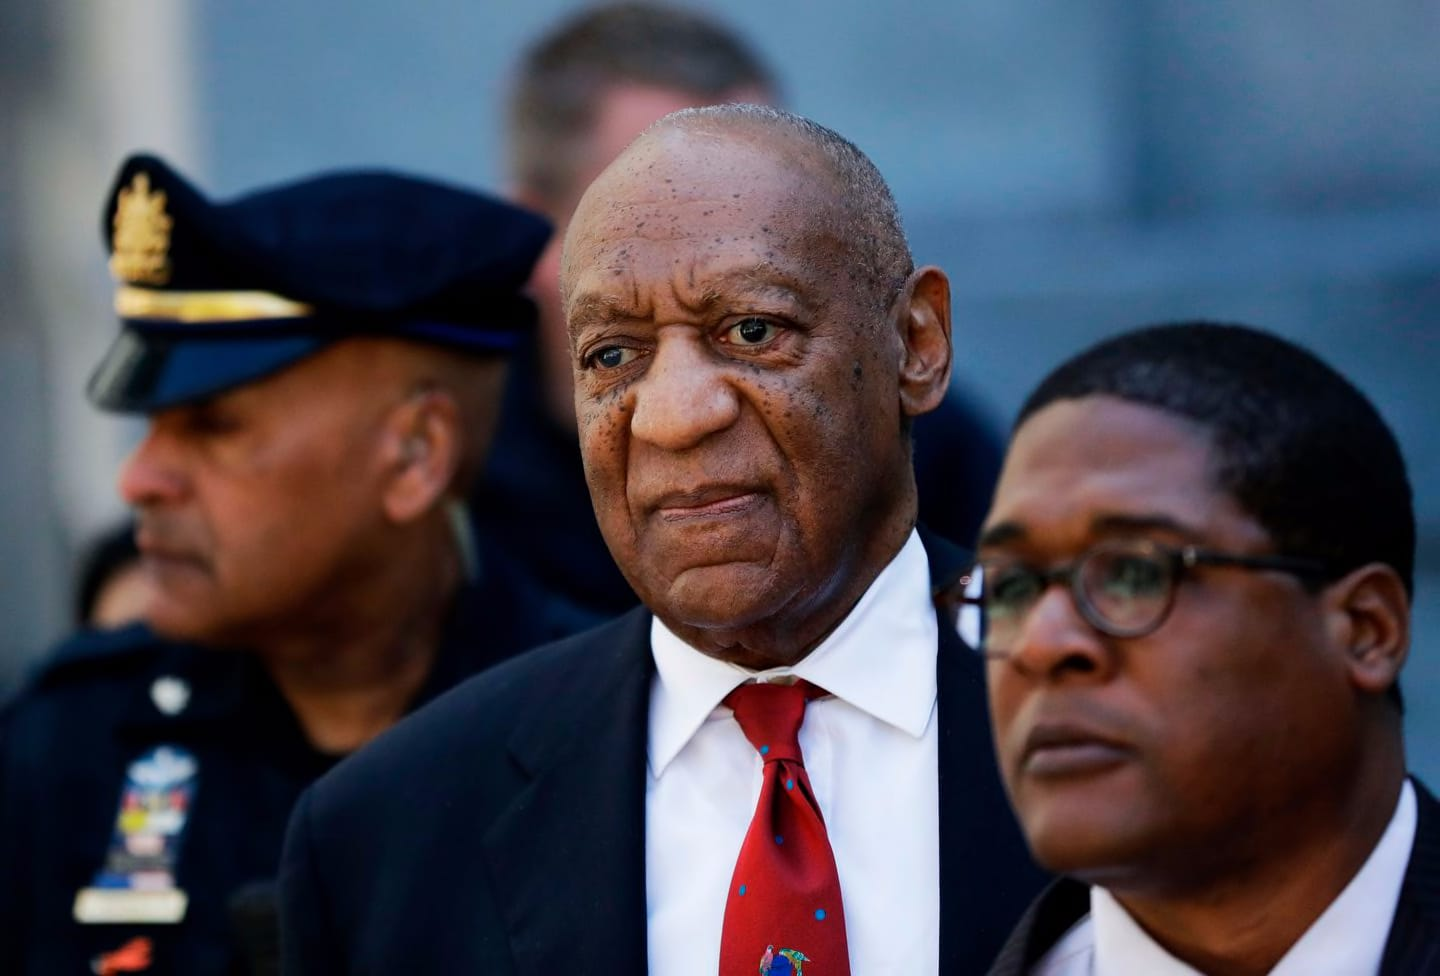 Bill Cosby left court after being convicted in 2018 of drugging and molesting a woman.